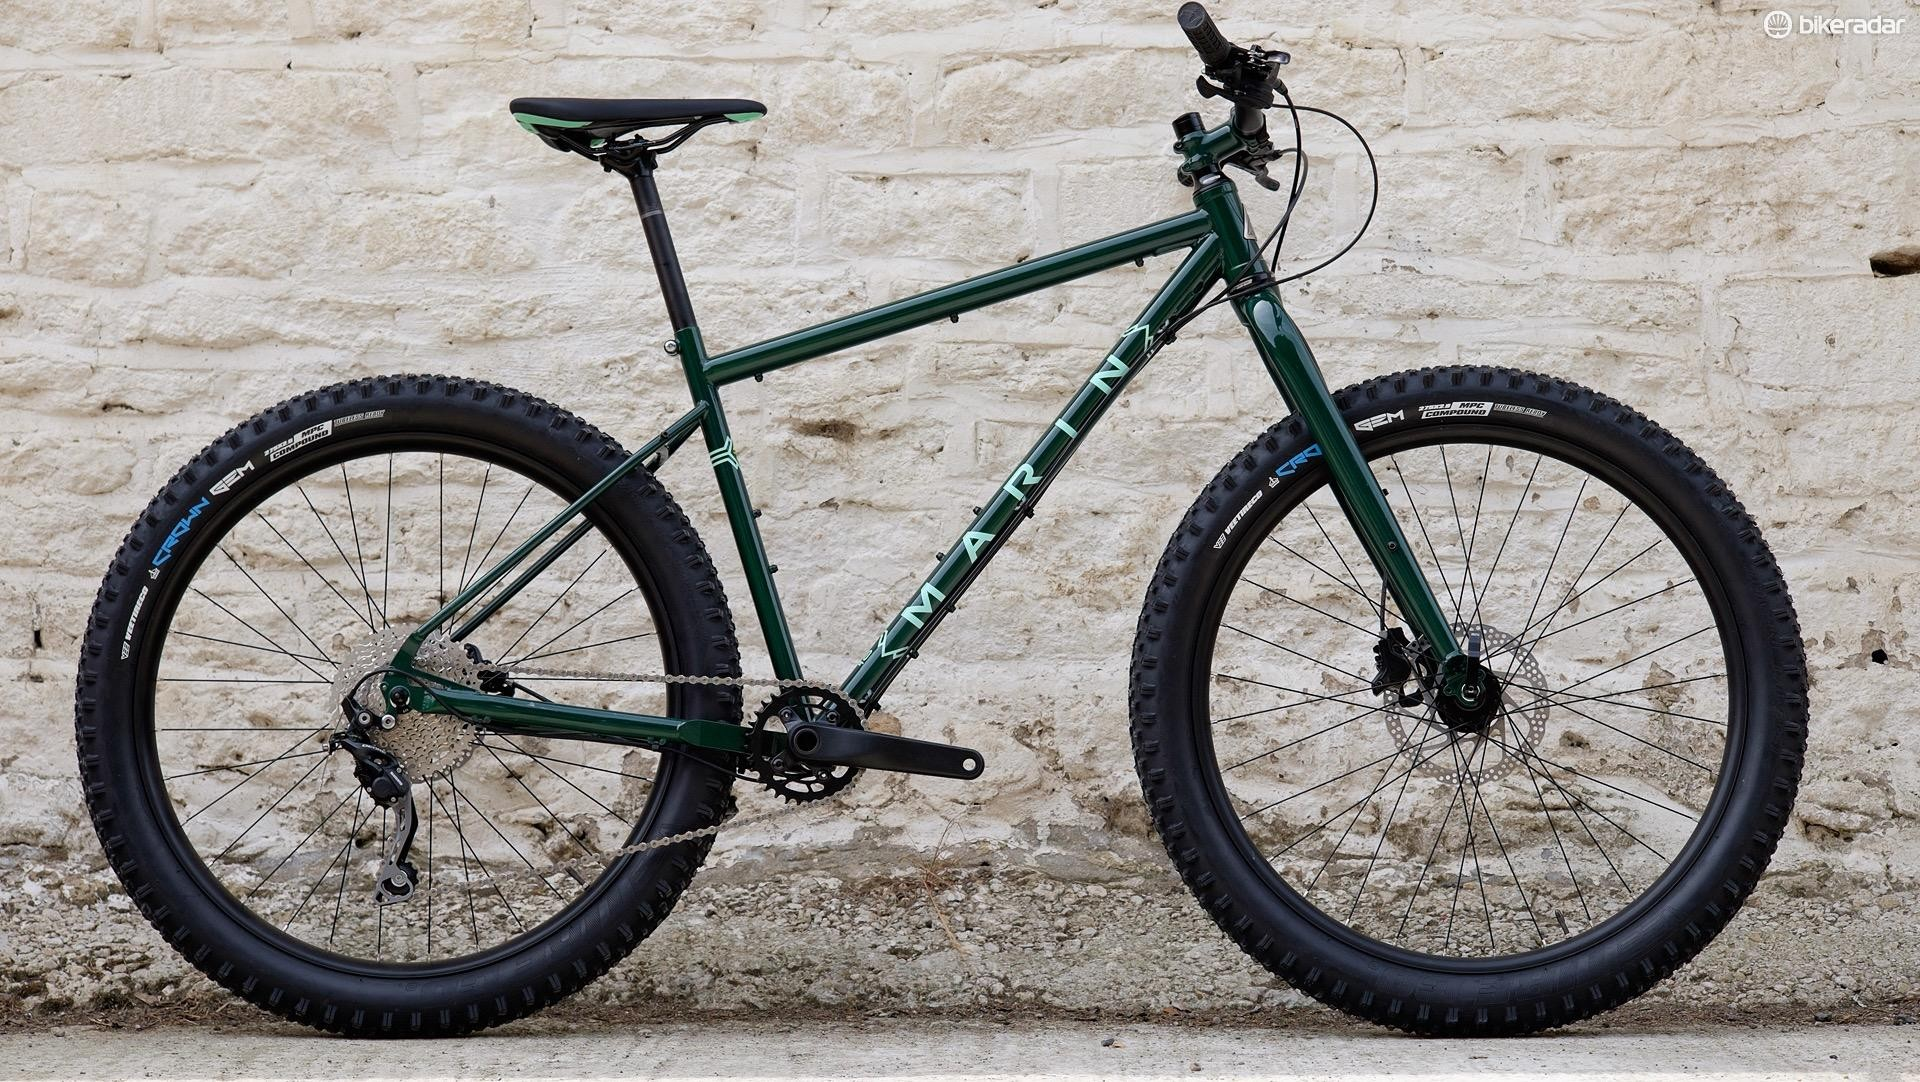 The 2018 Marin Pine Mountain will retail for £899